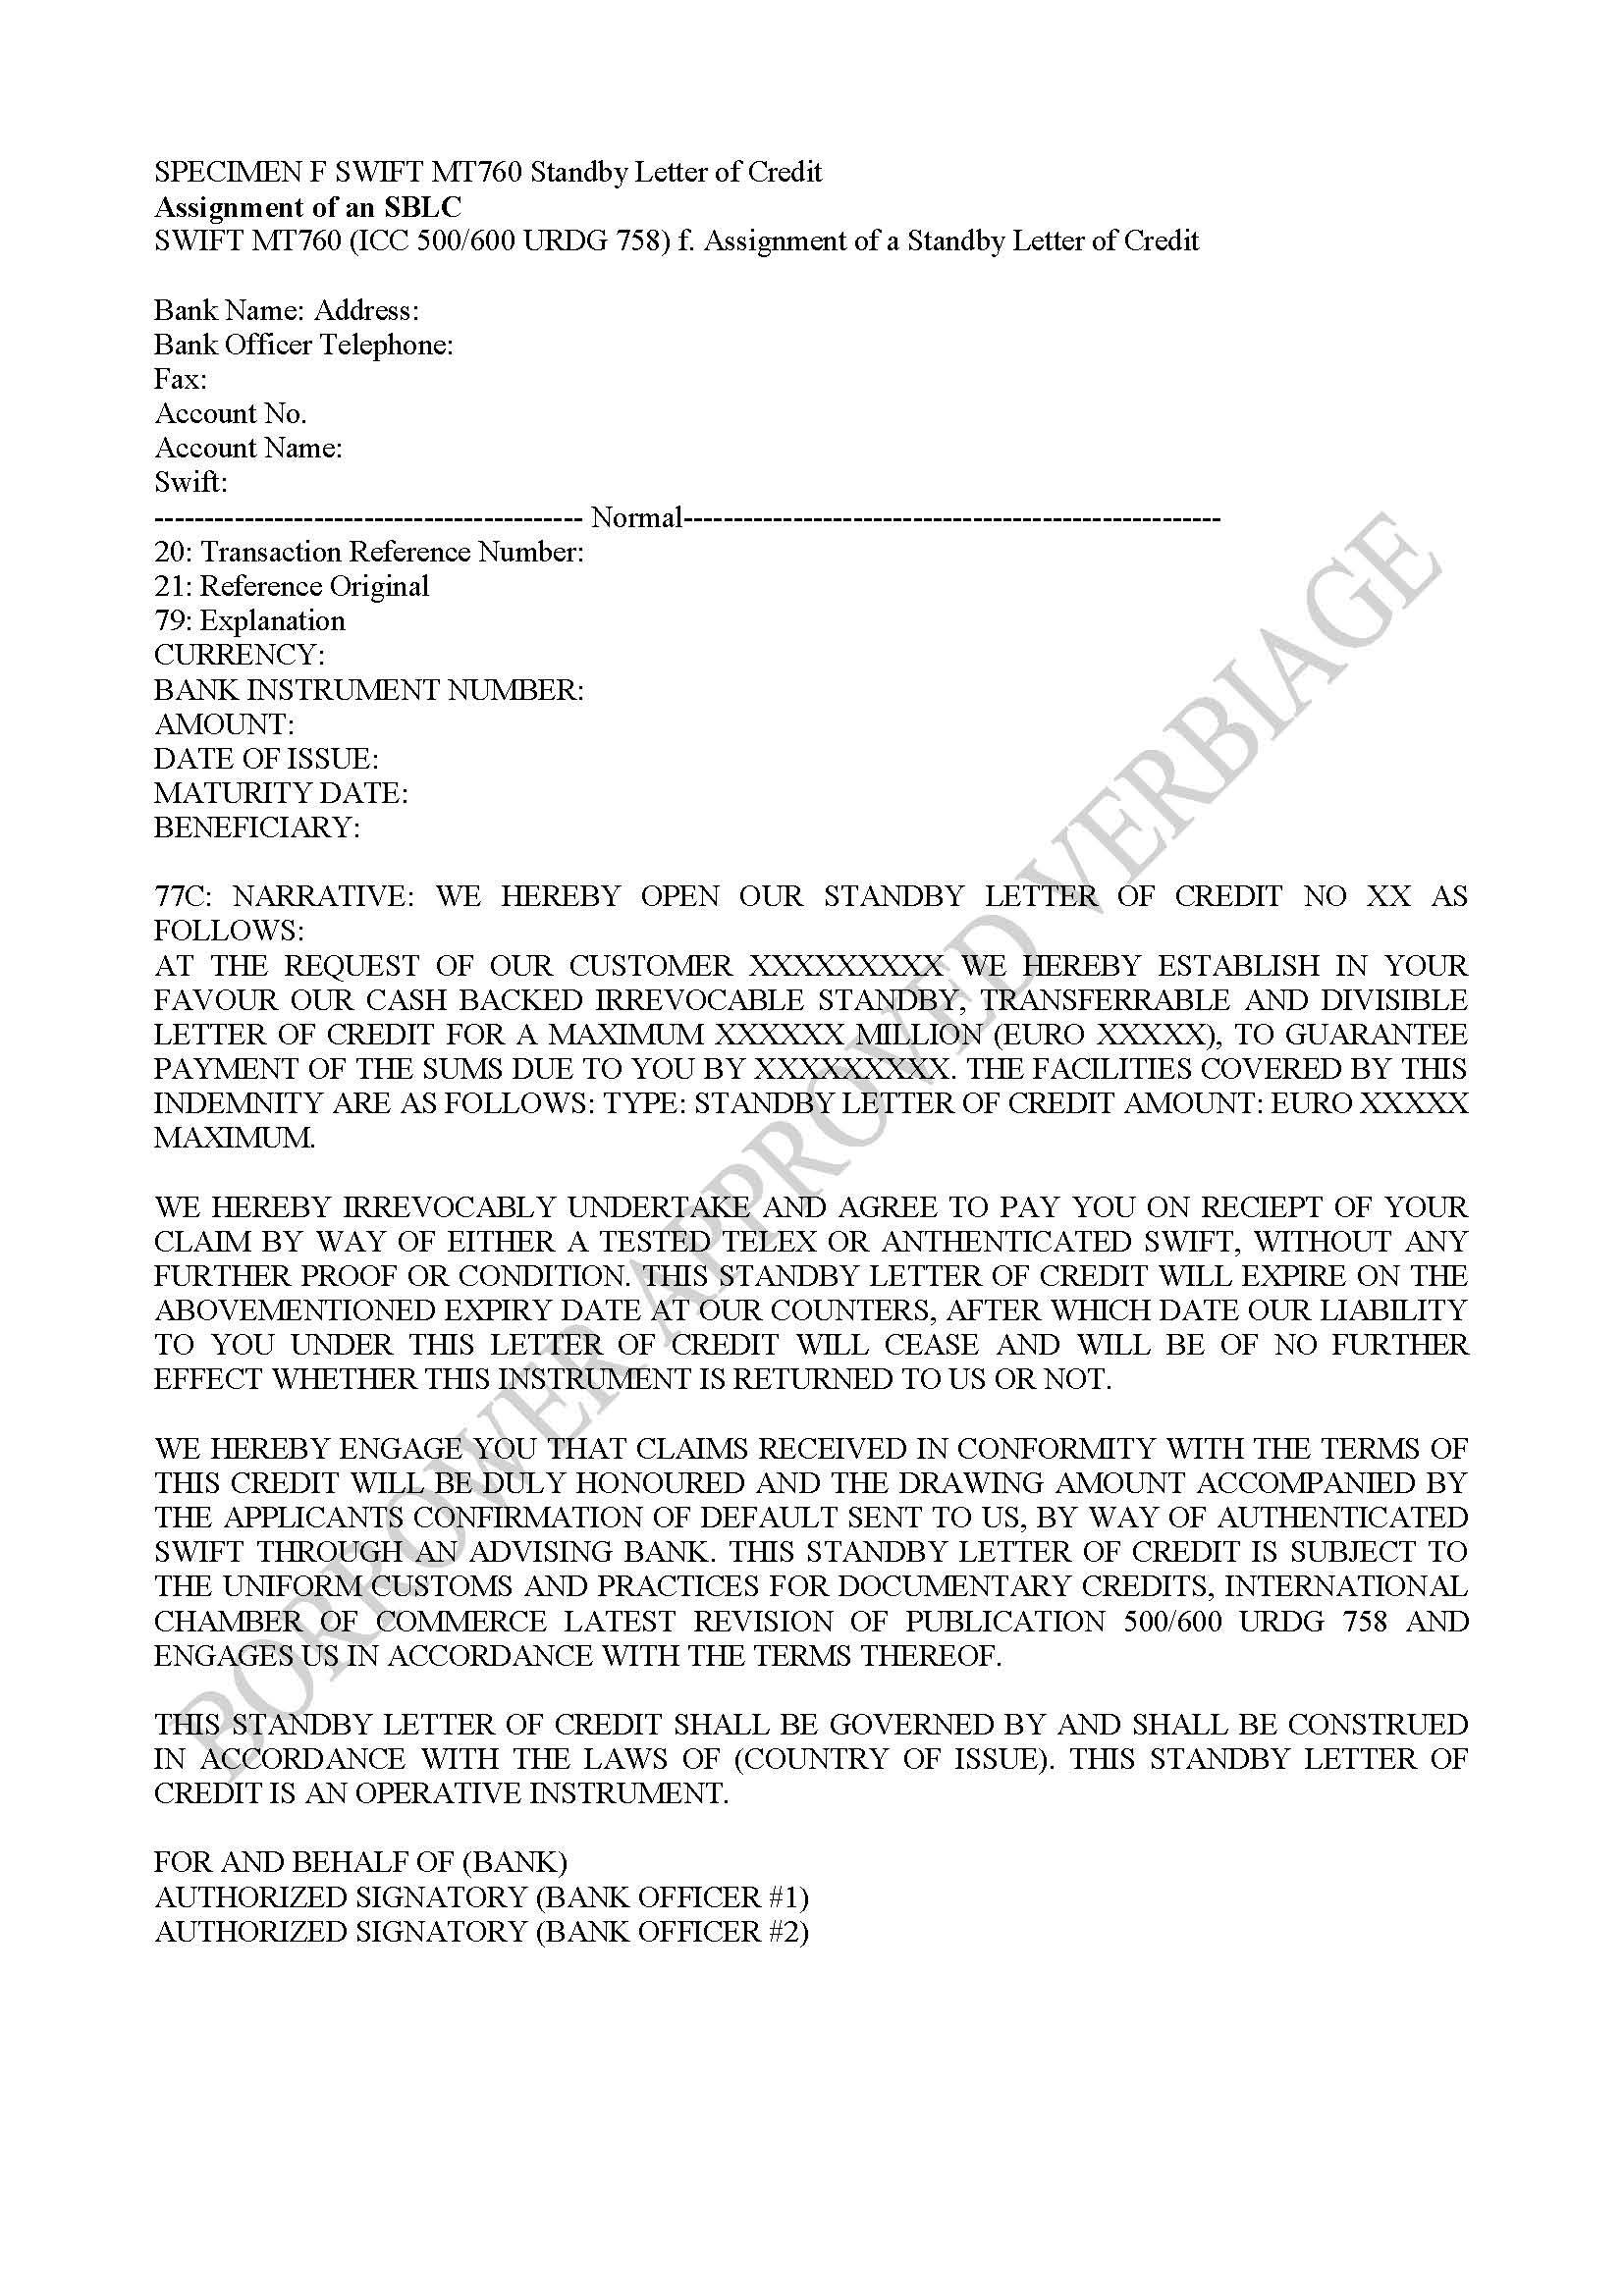 BUSINESS SUPPORT CONTRACT (ALL SPECIMEN)_Seite_6